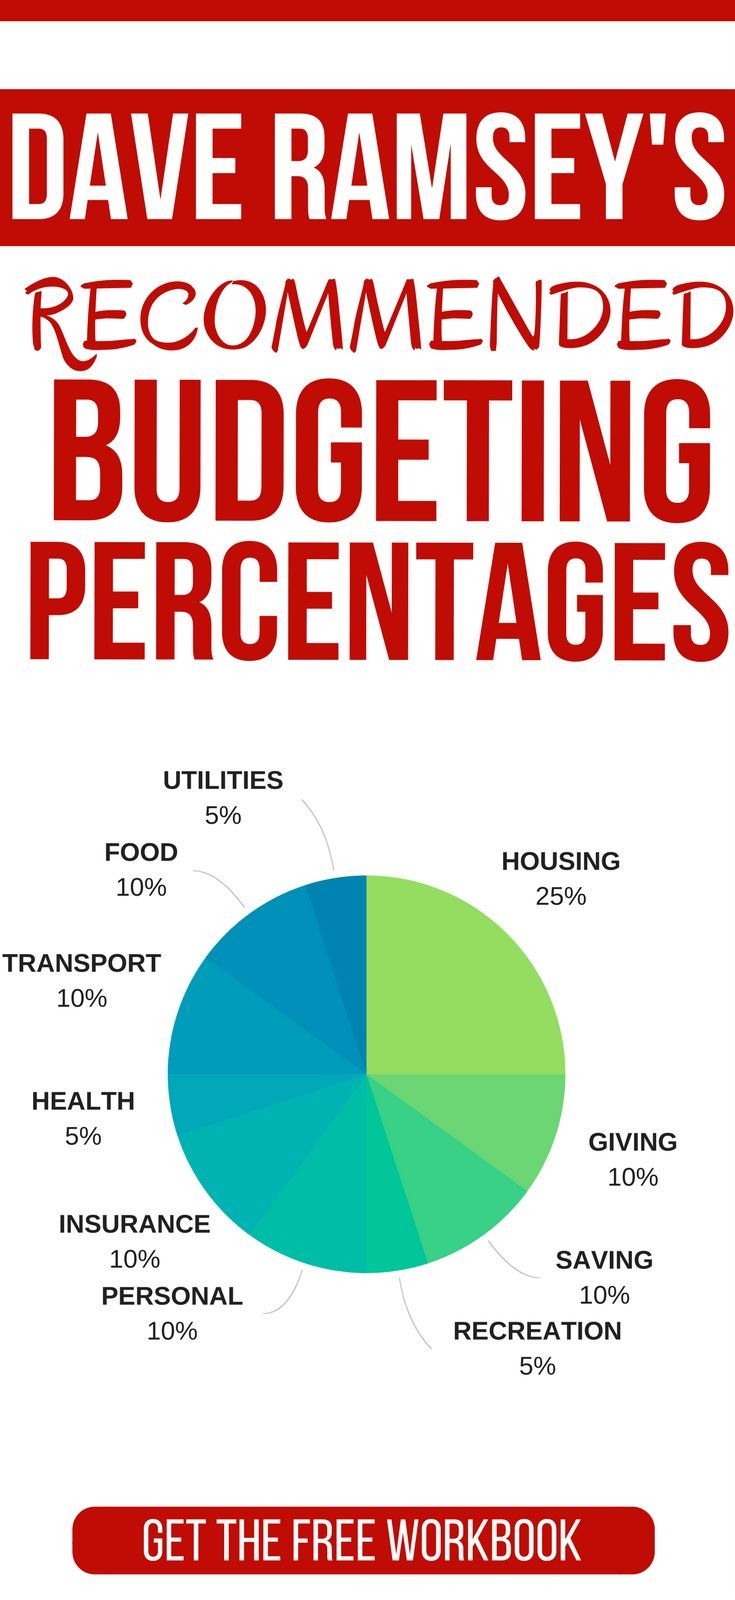 Dave Ramsey Recommended Household Budget Percentages | Budgeting ...